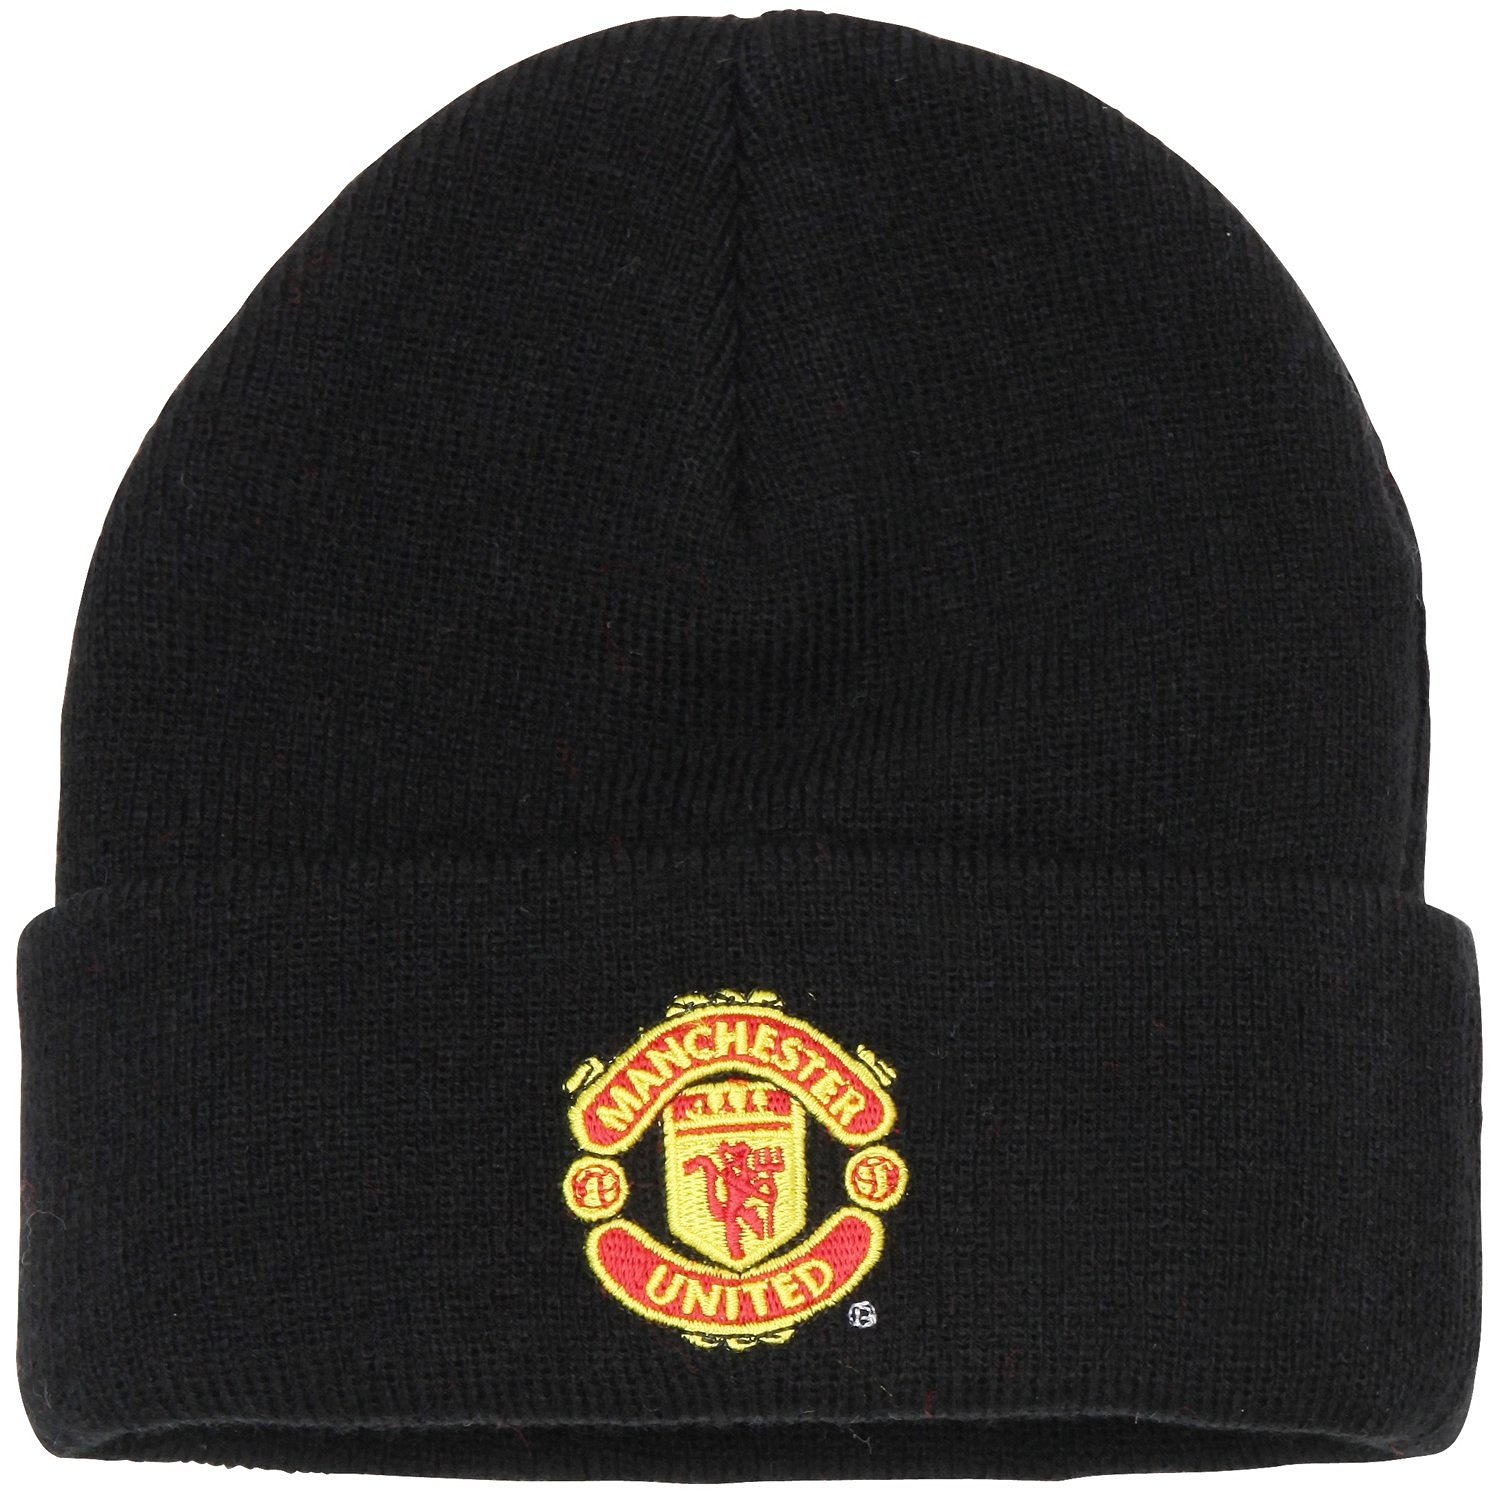 bb51f2d74 Cheap Manchester United Merchandise, find Manchester United ...